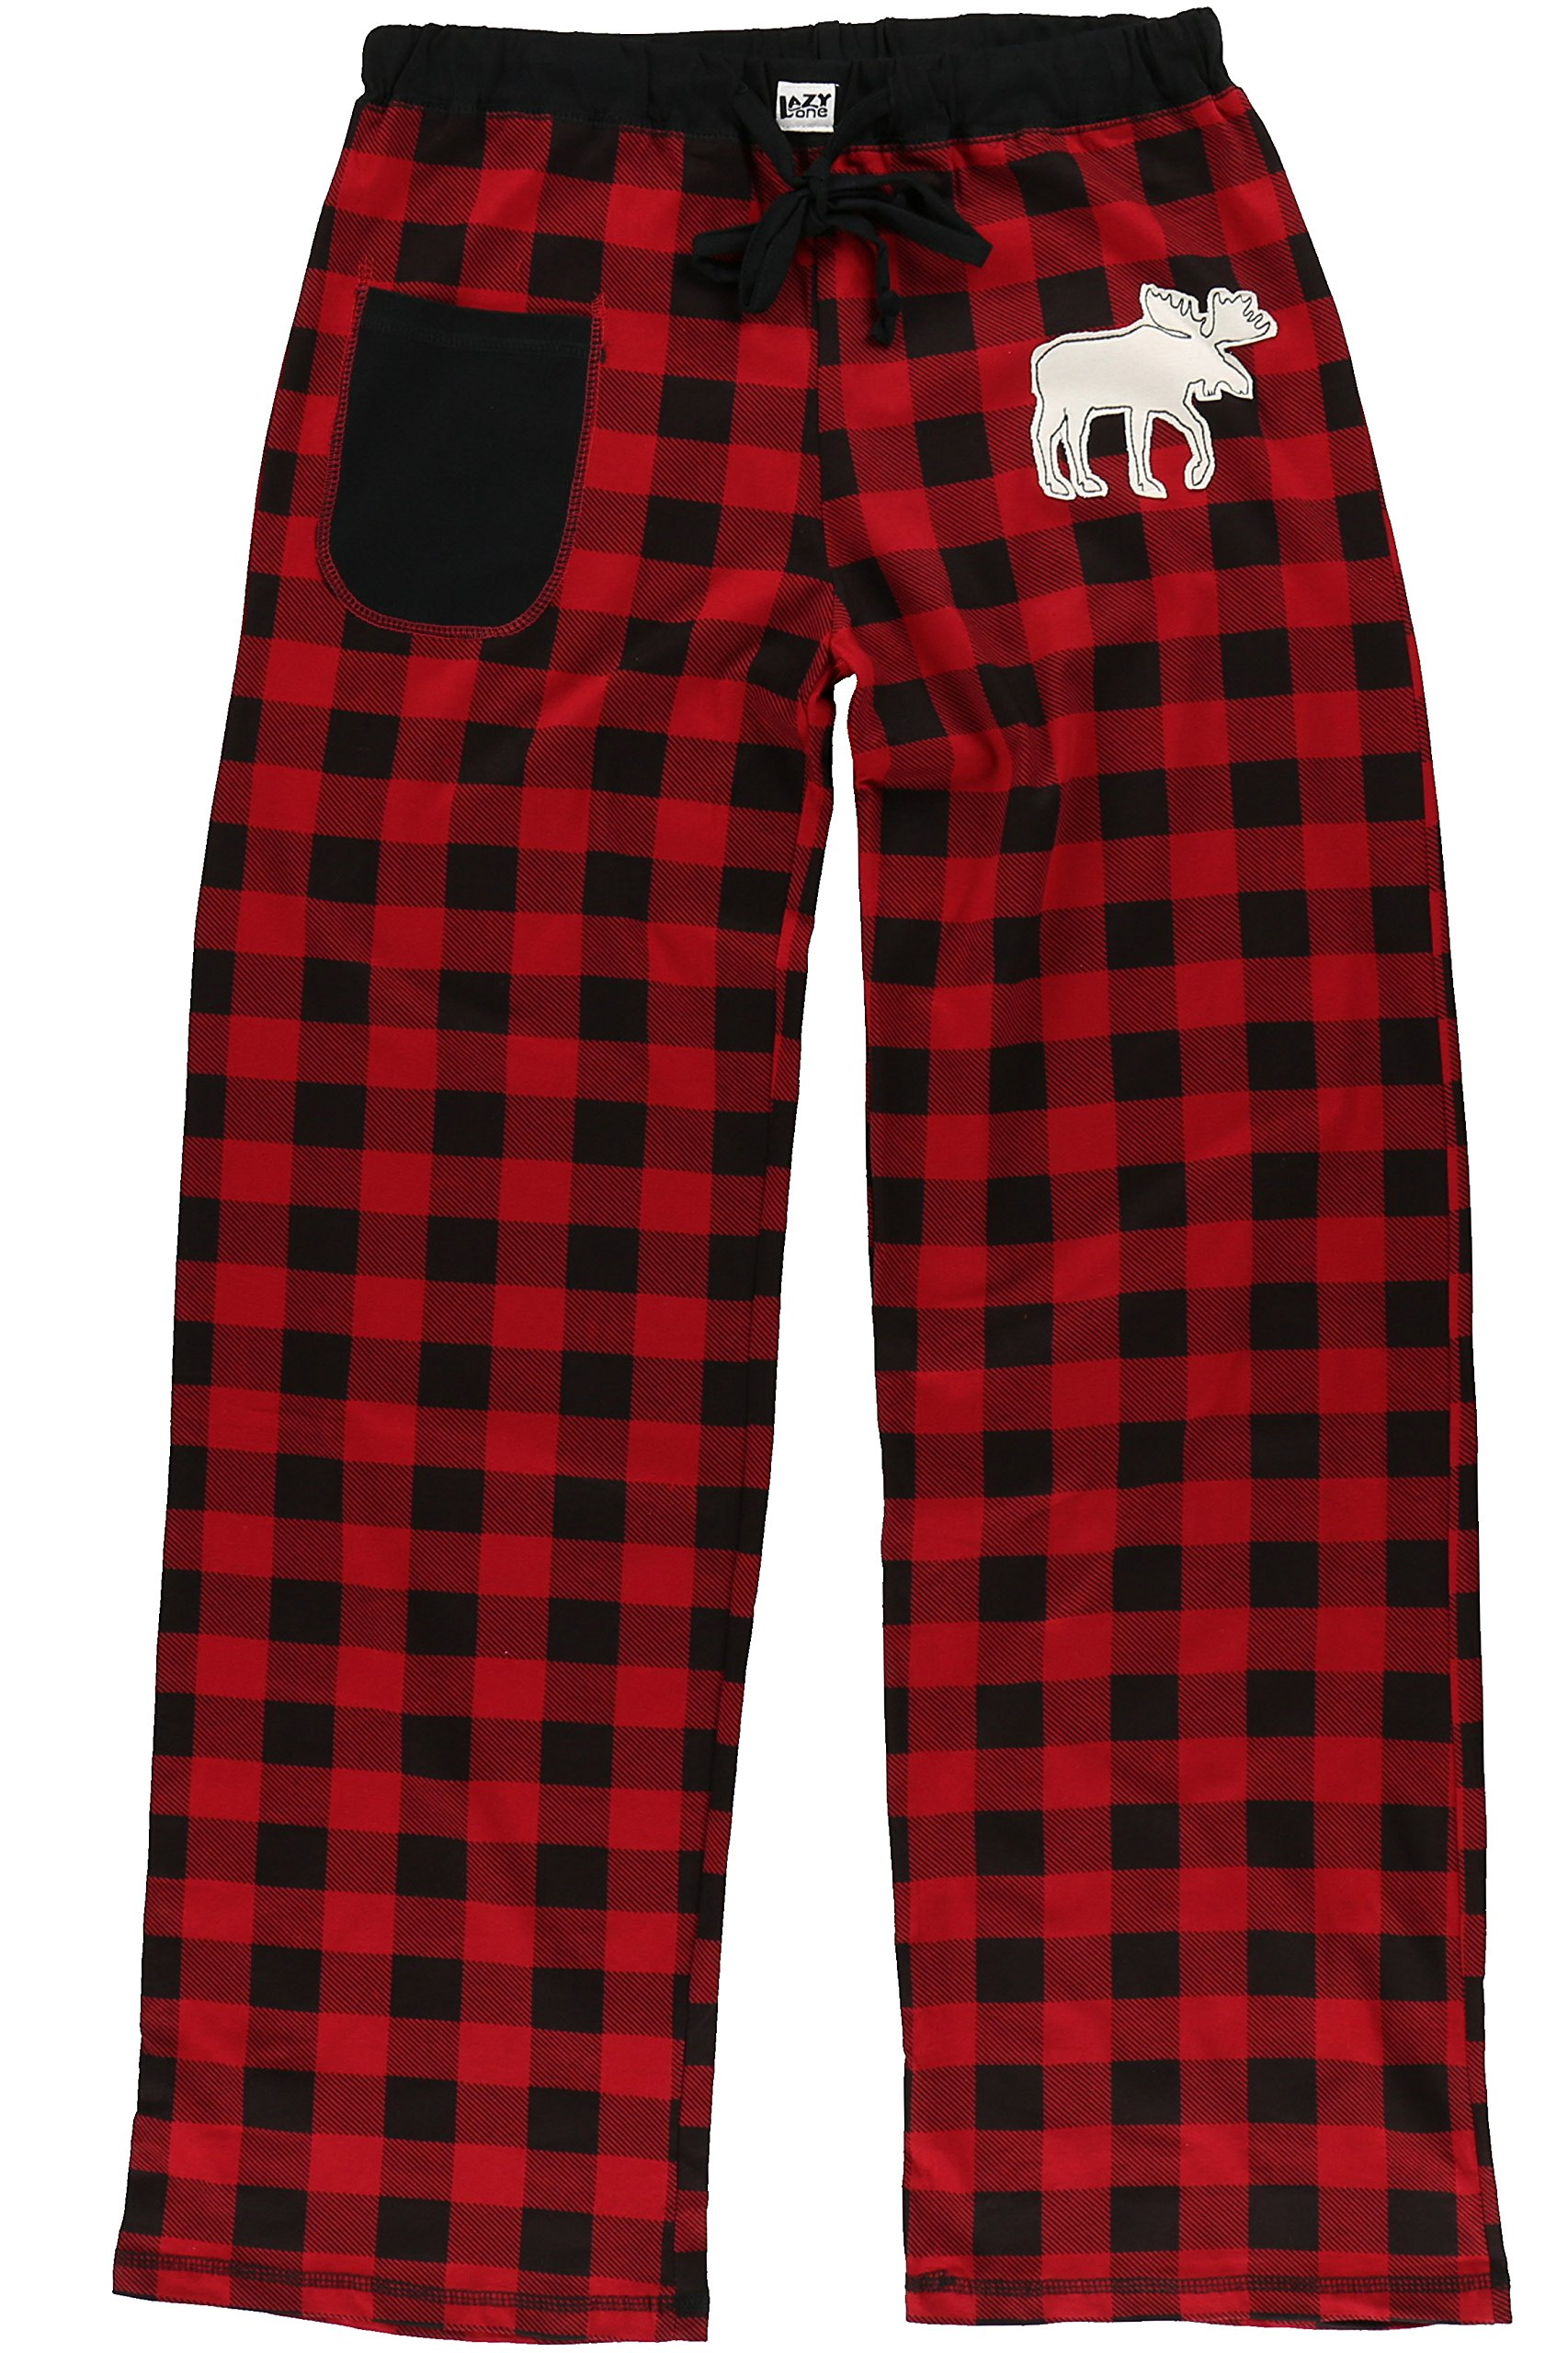 Lazy One Family Sets Teens and Adults Matching Pajamas for Baby /& Kids